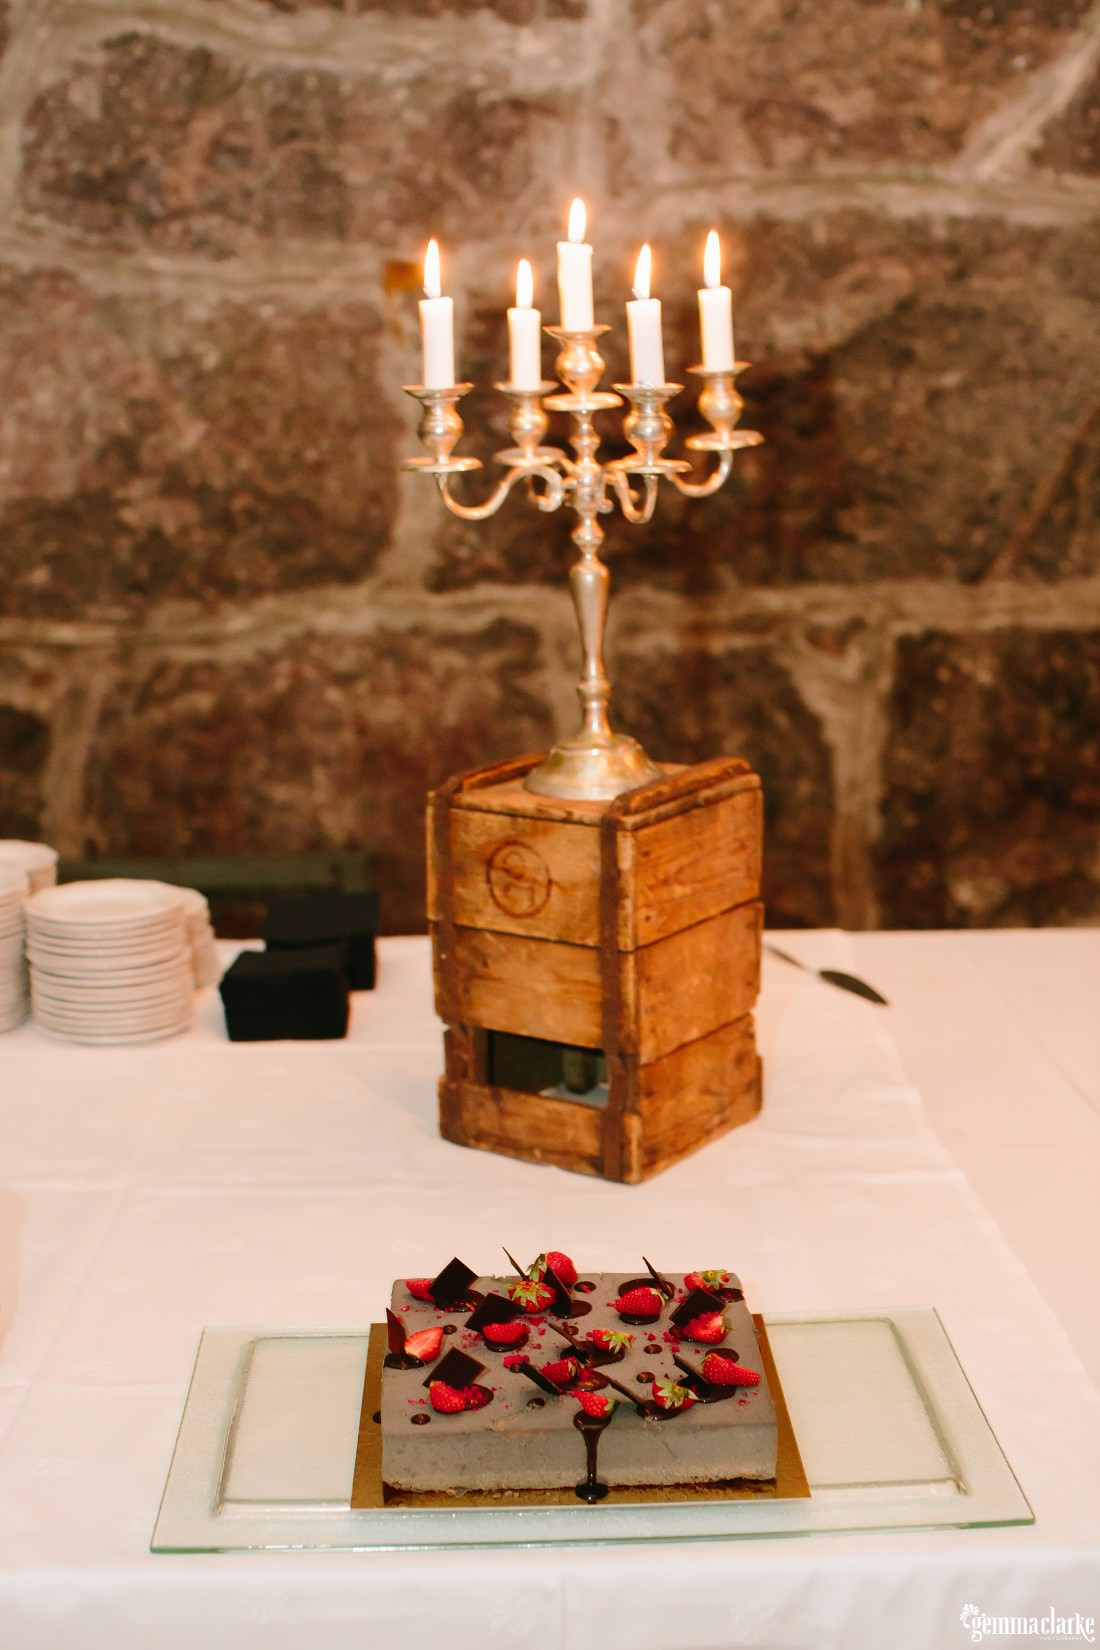 A wedding cake with strawberries and chocolate in front of a candelabra on a small wooden crate